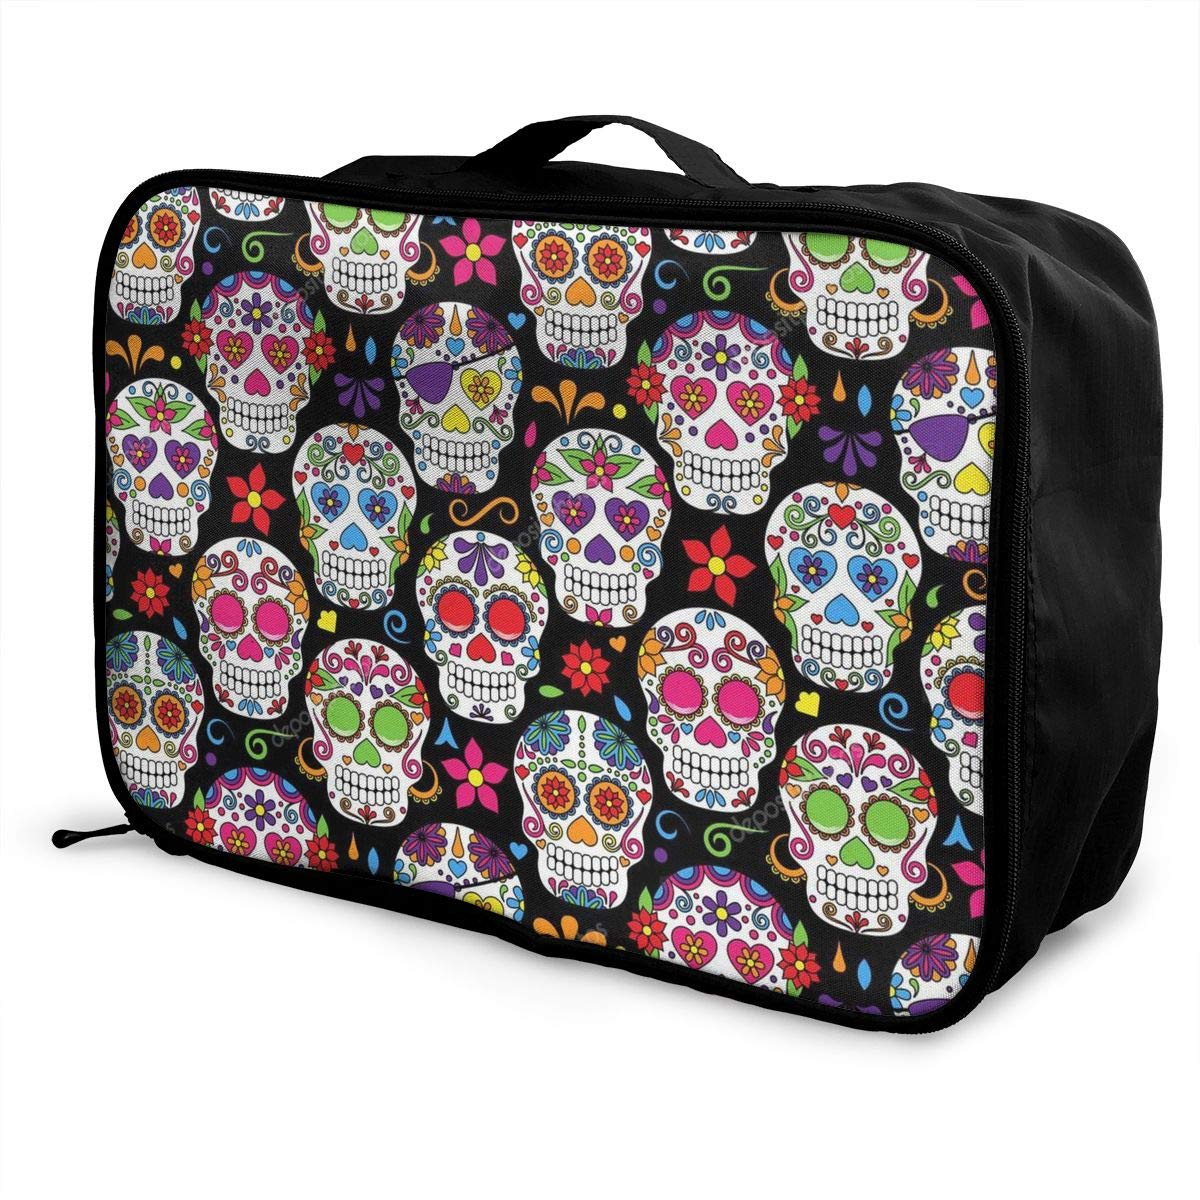 Travel Fashion Lightweight Large Capacity Duffel Portable Waterproof Foldable Storage Carry Luggage Tote Bag Cute Skull Pattern